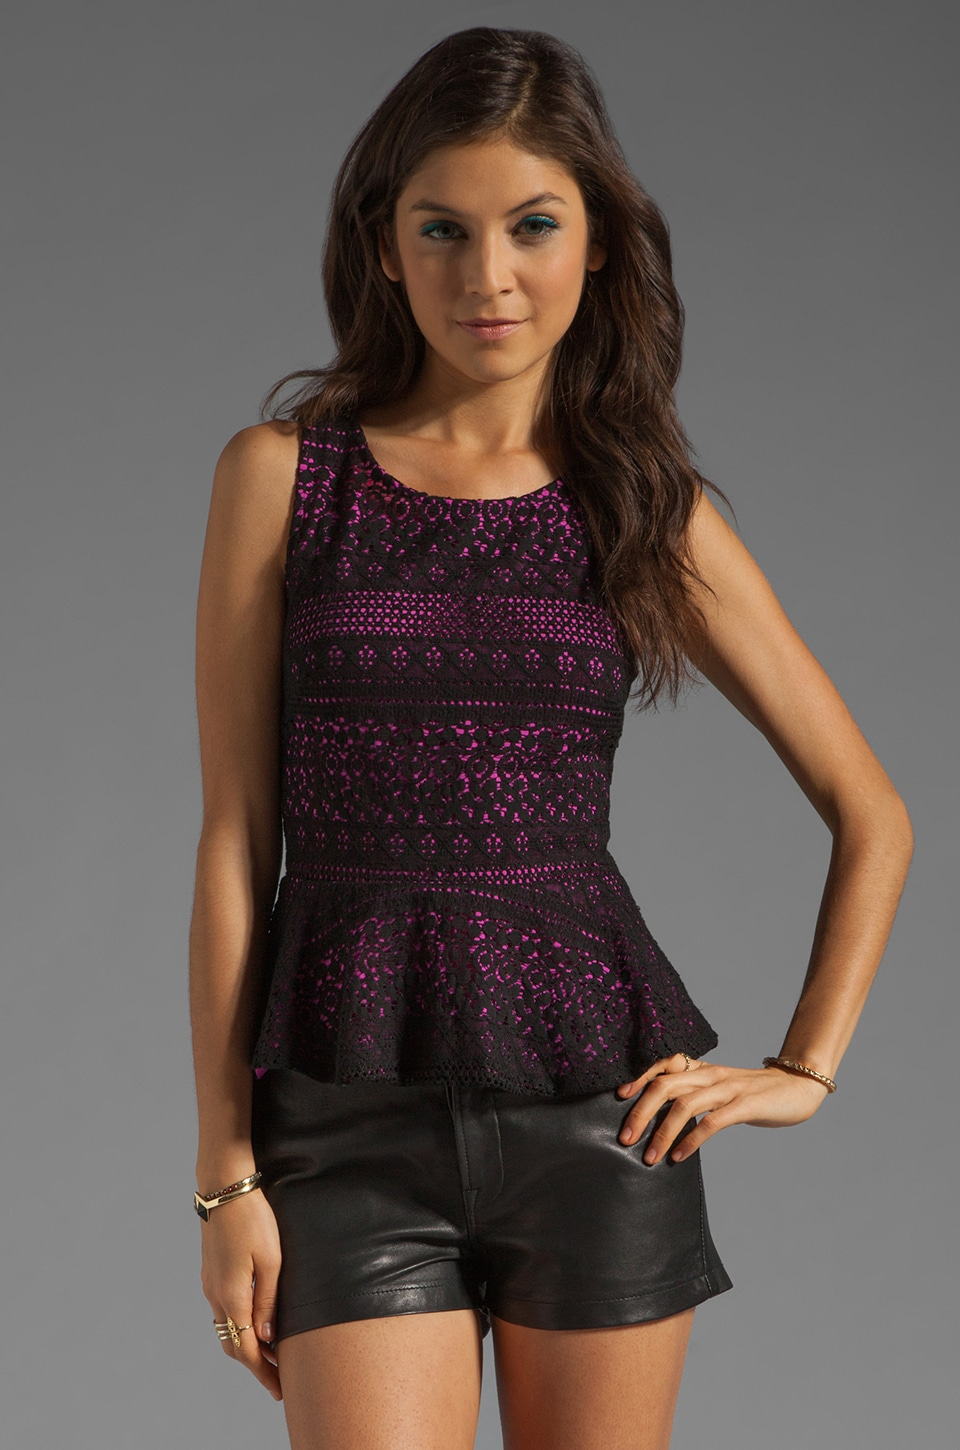 Eight Sixty Lace Peplum Top in Black/Hibiscus